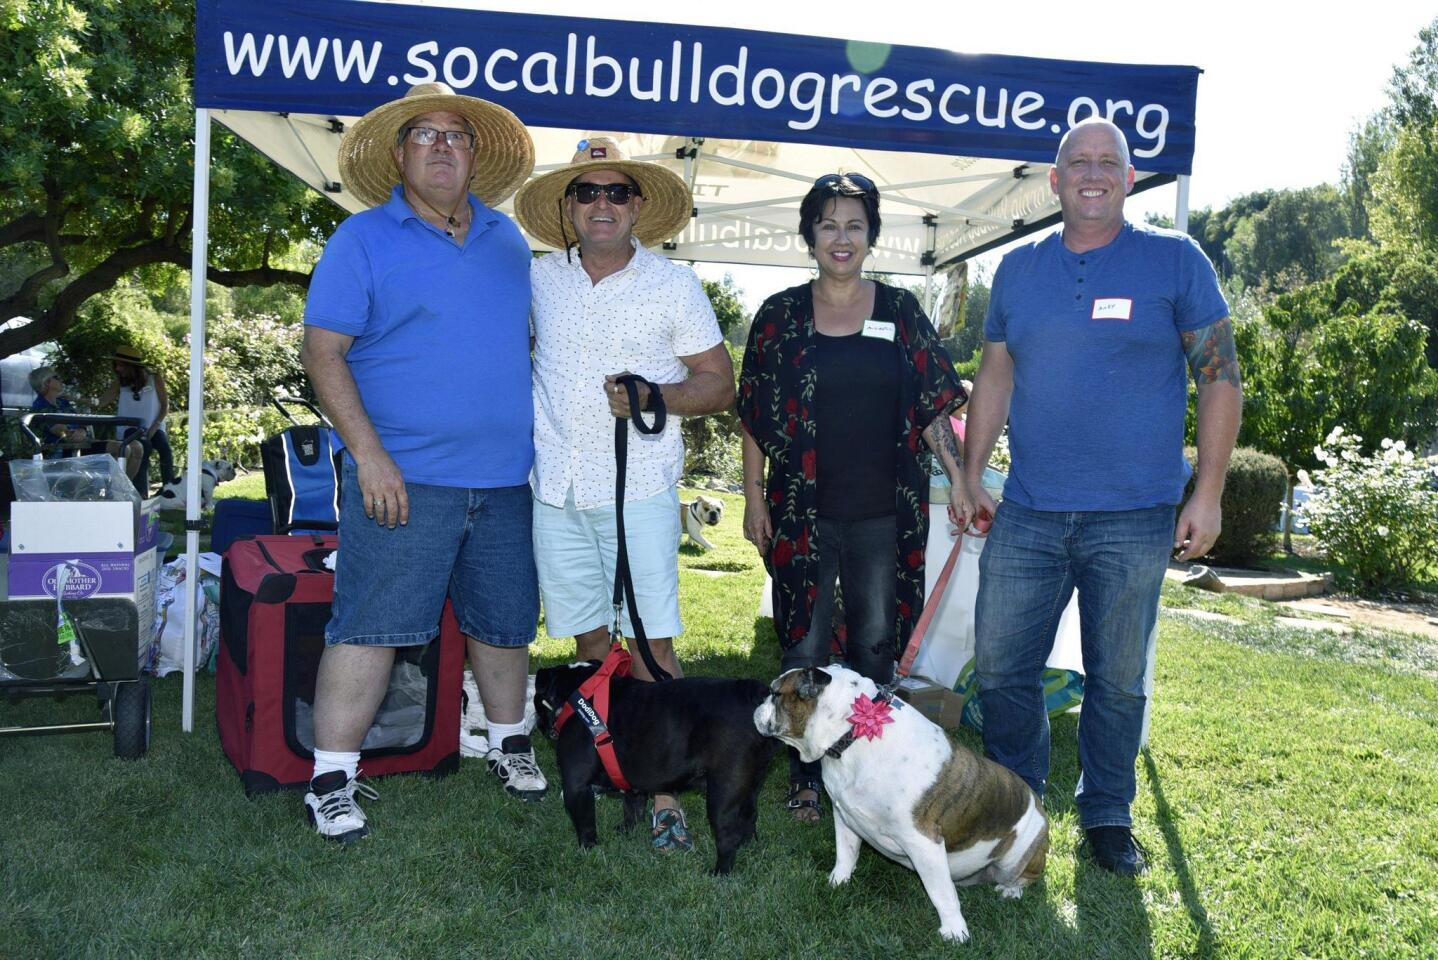 www.SoCalBullDogRescue.org Director Skip Van Der Marliere, George Britton with Beauty, aka Bea, MIchell and Andy Sydoriak with Polly